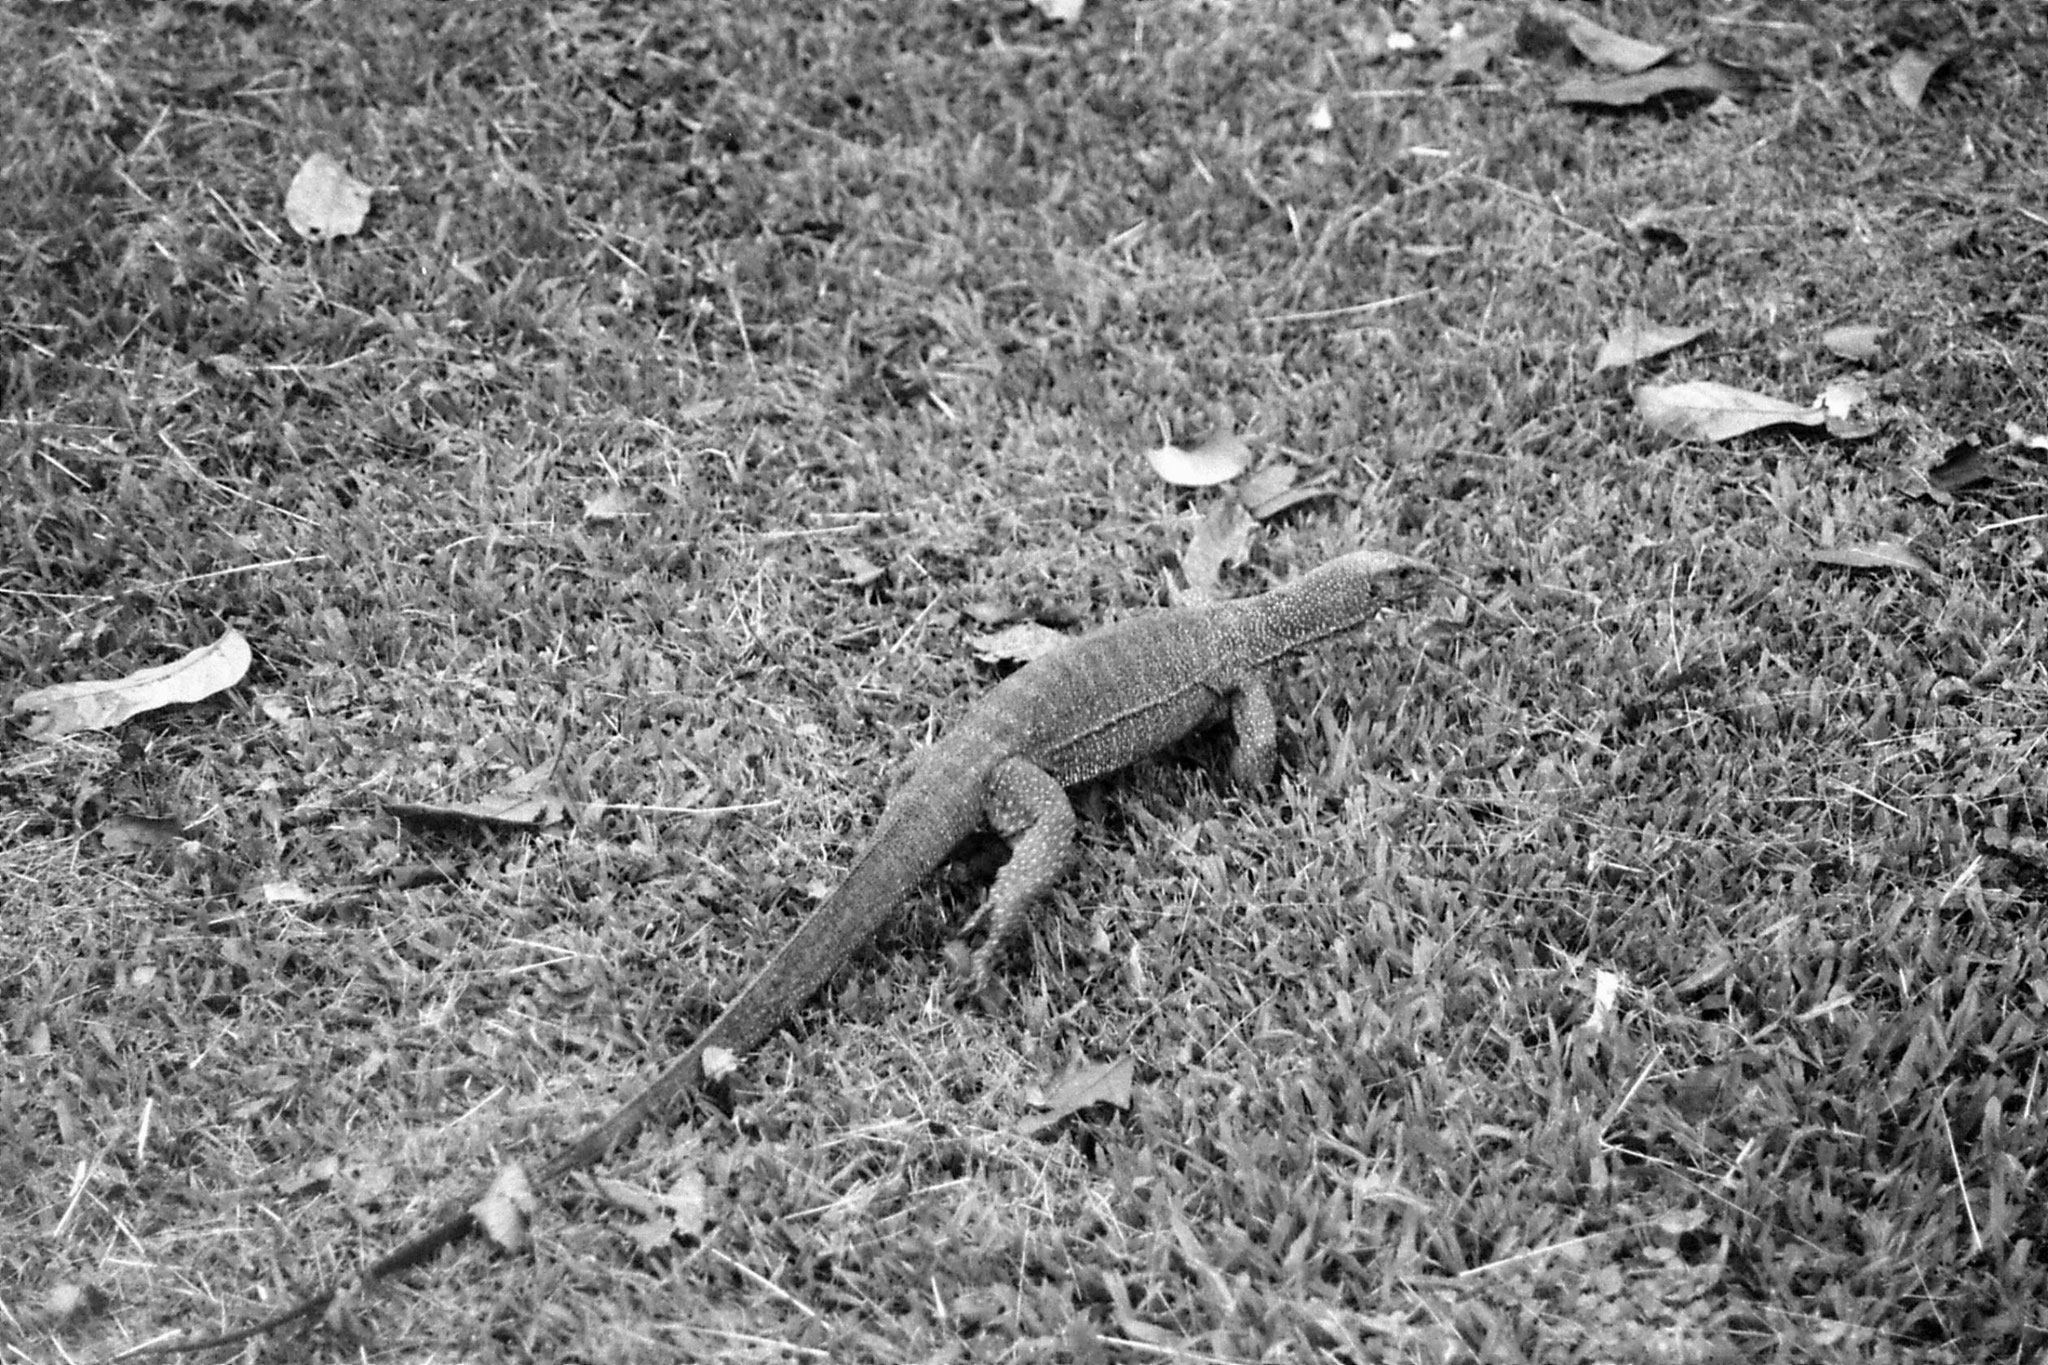 22/6/1990: 37: Tamen Negara, monitor lizard 1m long